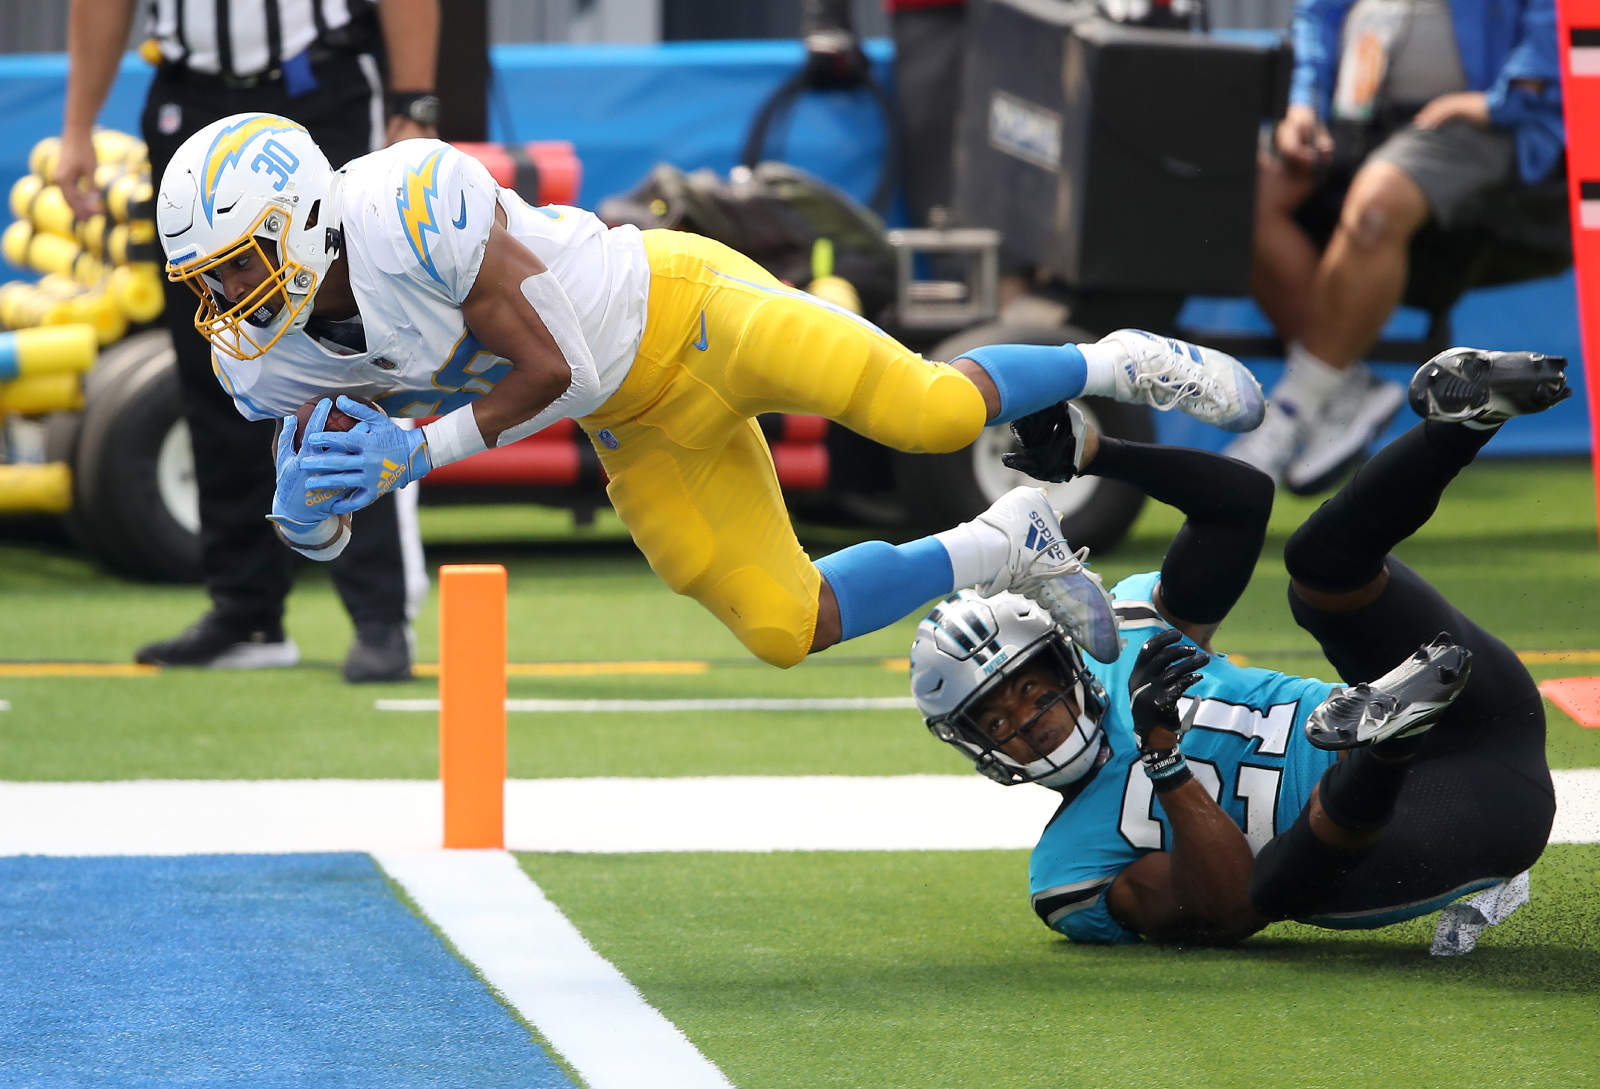 The Los Angeles Chargers just lost their $24.5 million star. Will the Chargers be able to replace Austin Ekeler and his production?